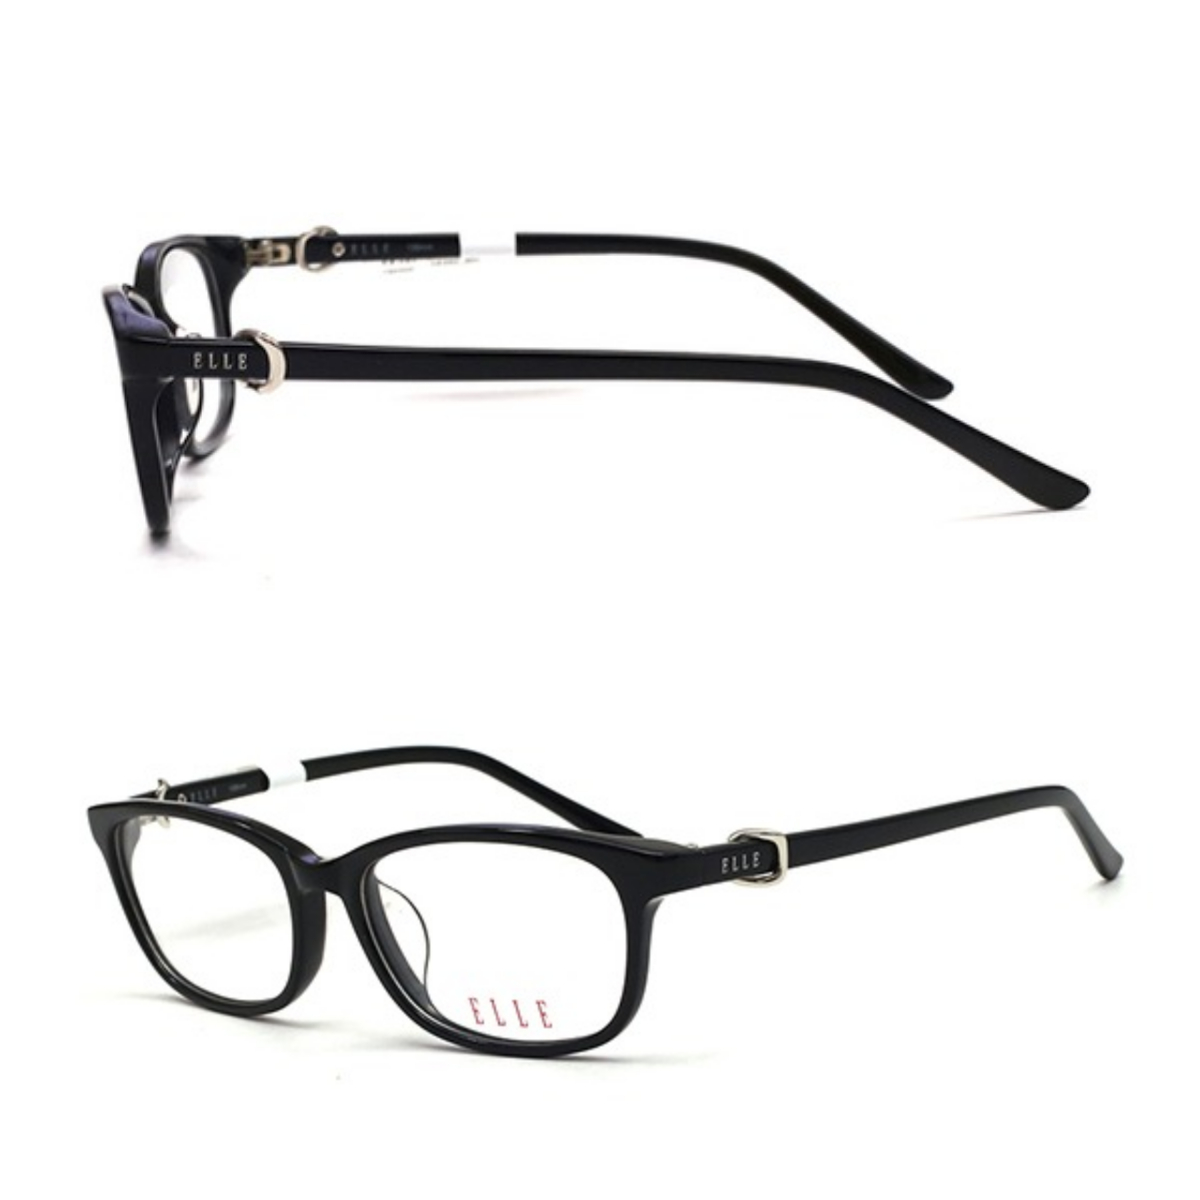 Elle EL14362-BK frames have smaller lenses with more curved shape in corners and edges.  Elle logo printed on the glass, combined with the accentuation is metal decorative details.  High quality frame material, limited deformation, light weight, does not leave marks on the skin despite being worn for a long time.